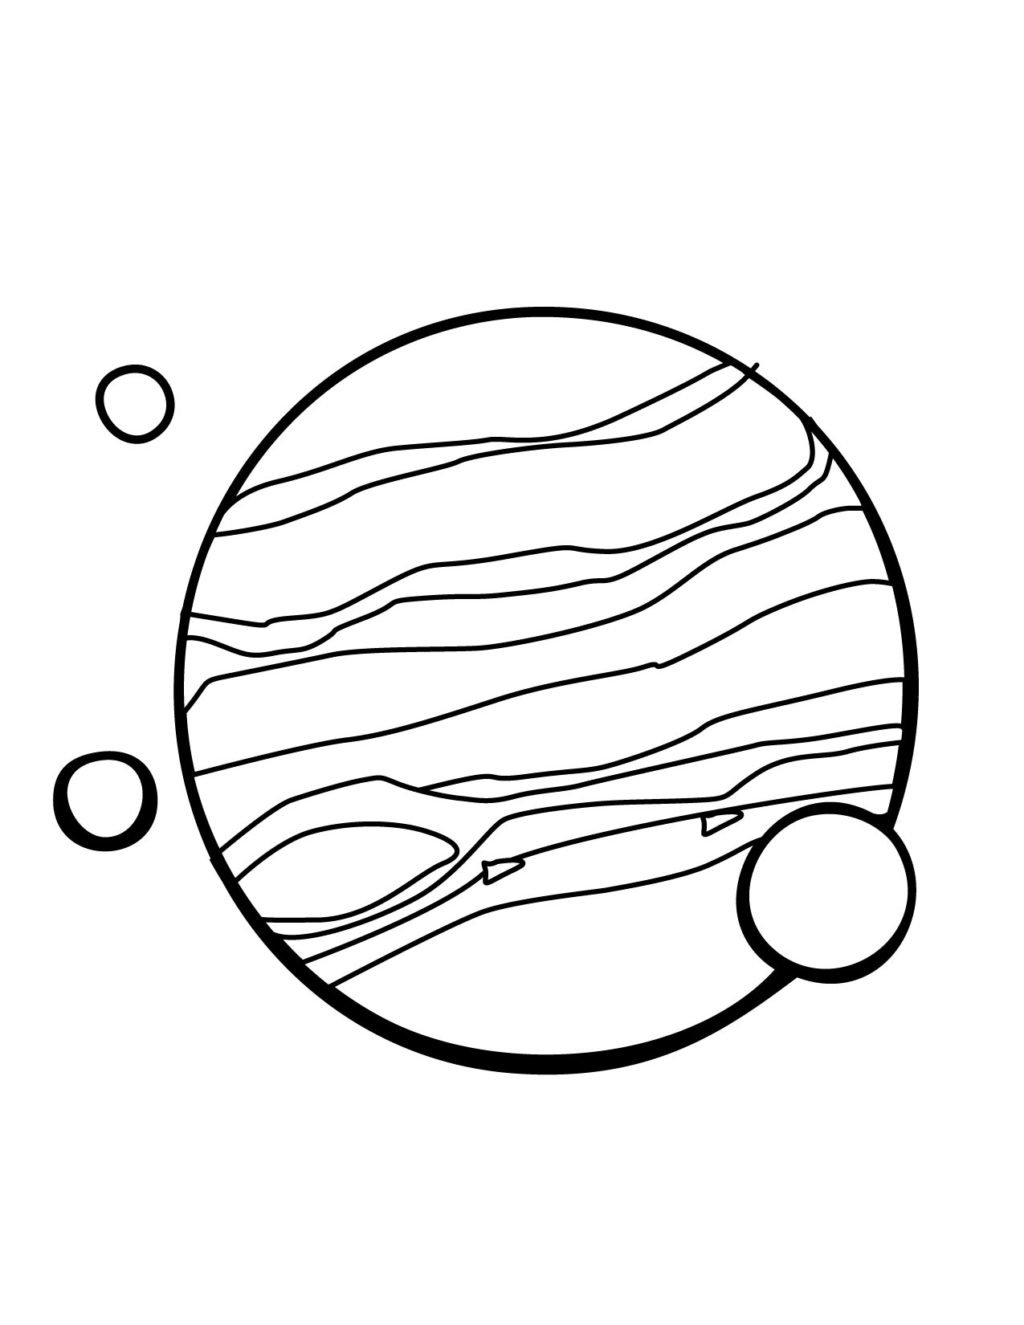 solar system coloring pages - HD 791×1024